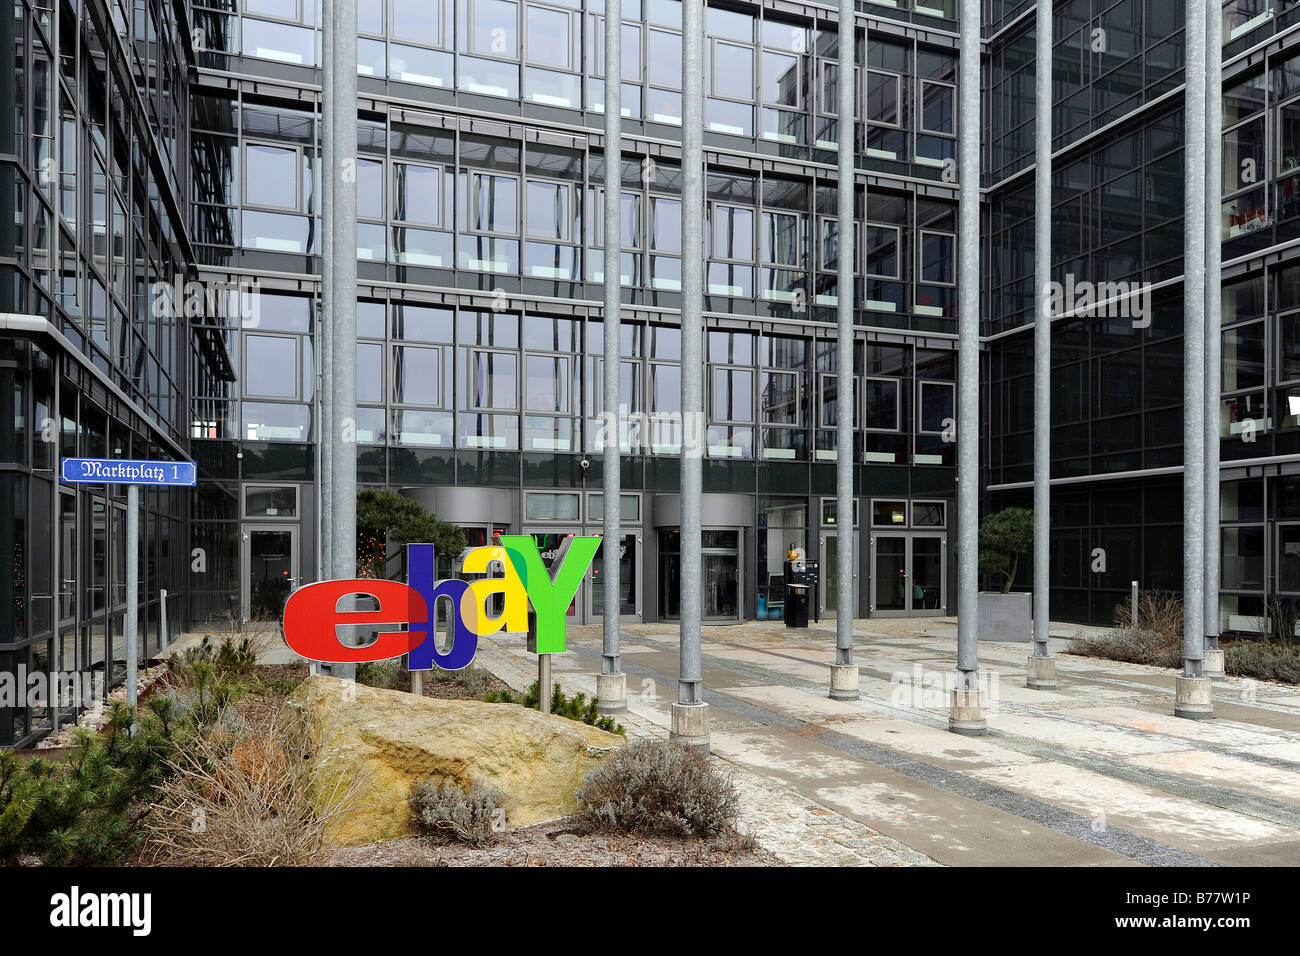 Ebay logo at the main entrance of the German headquarters in Kleinmachnow near Berlin, Germany, Europe - Stock Image